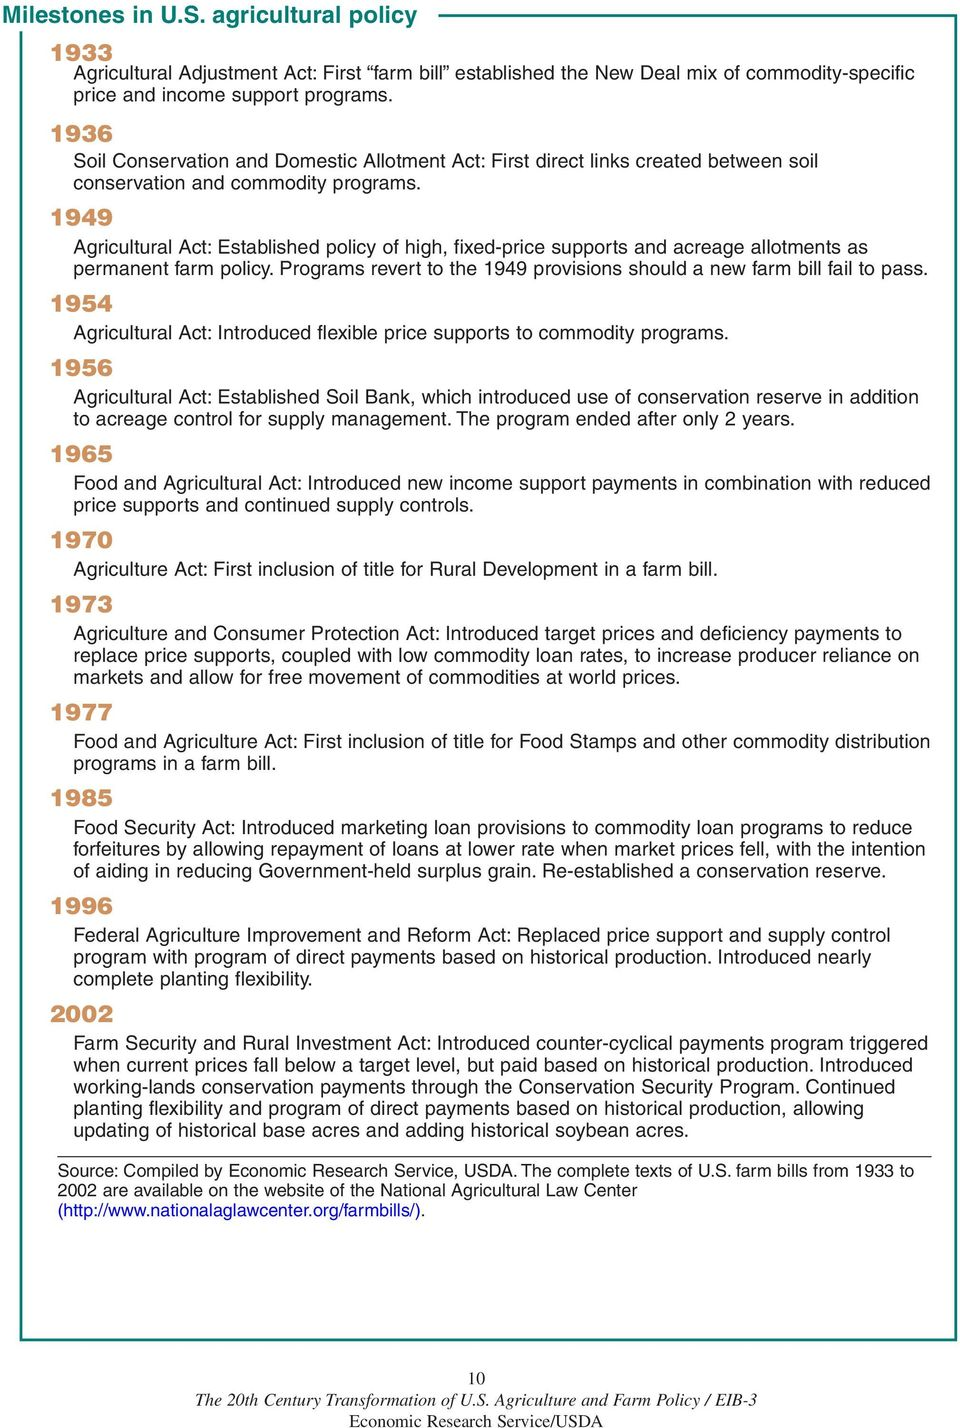 1949 Agricultural Act: Established policy of high, fixed-price supports and acreage allotments as permanent farm policy. Programs revert to the 1949 provisions should a new farm bill fail to pass.